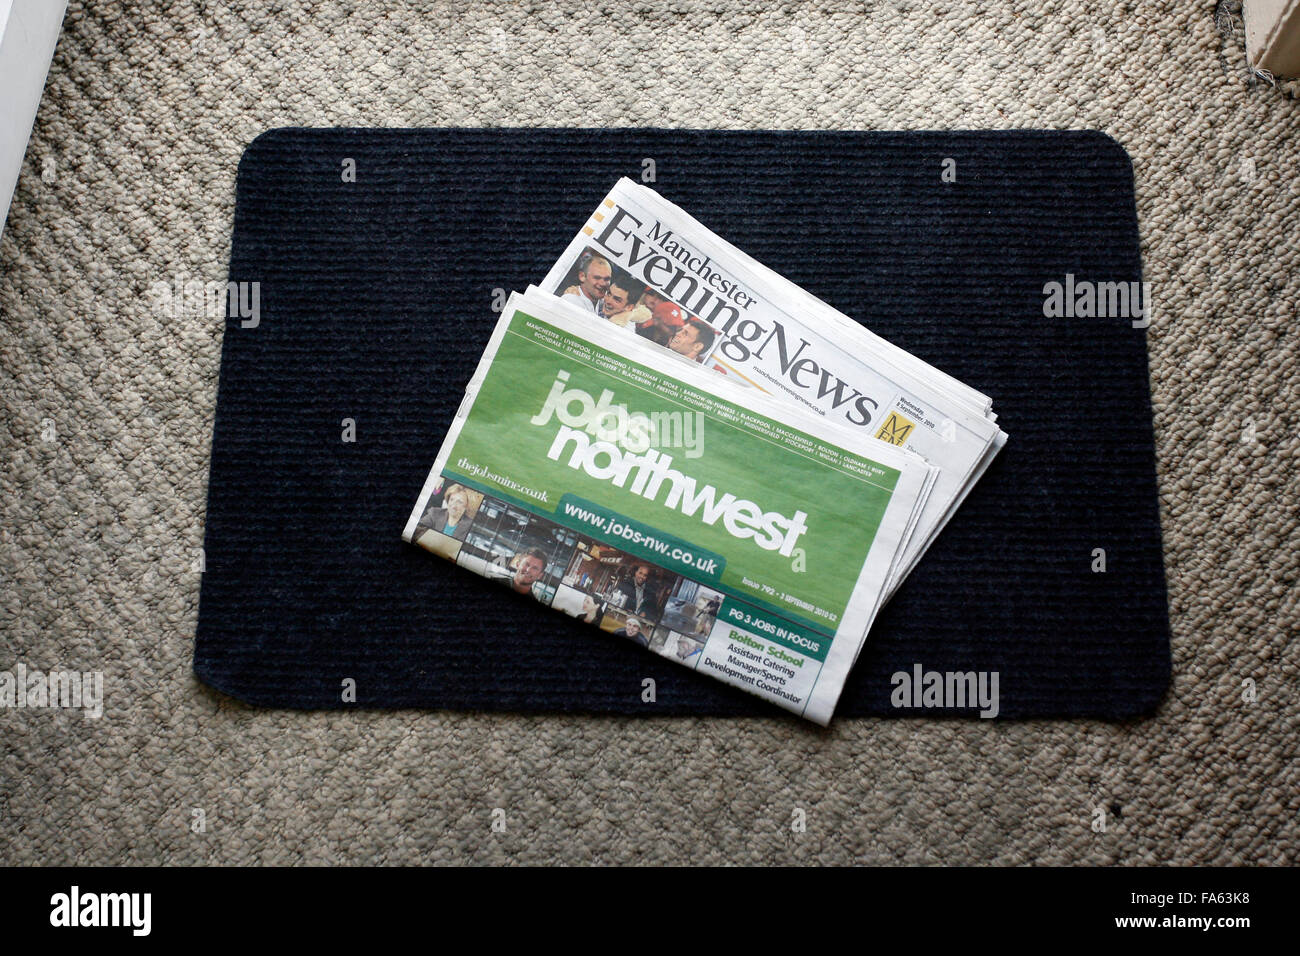 Manchester Evening News and Jobs Northwest supplement  newspaper on a doormat - Stock Image